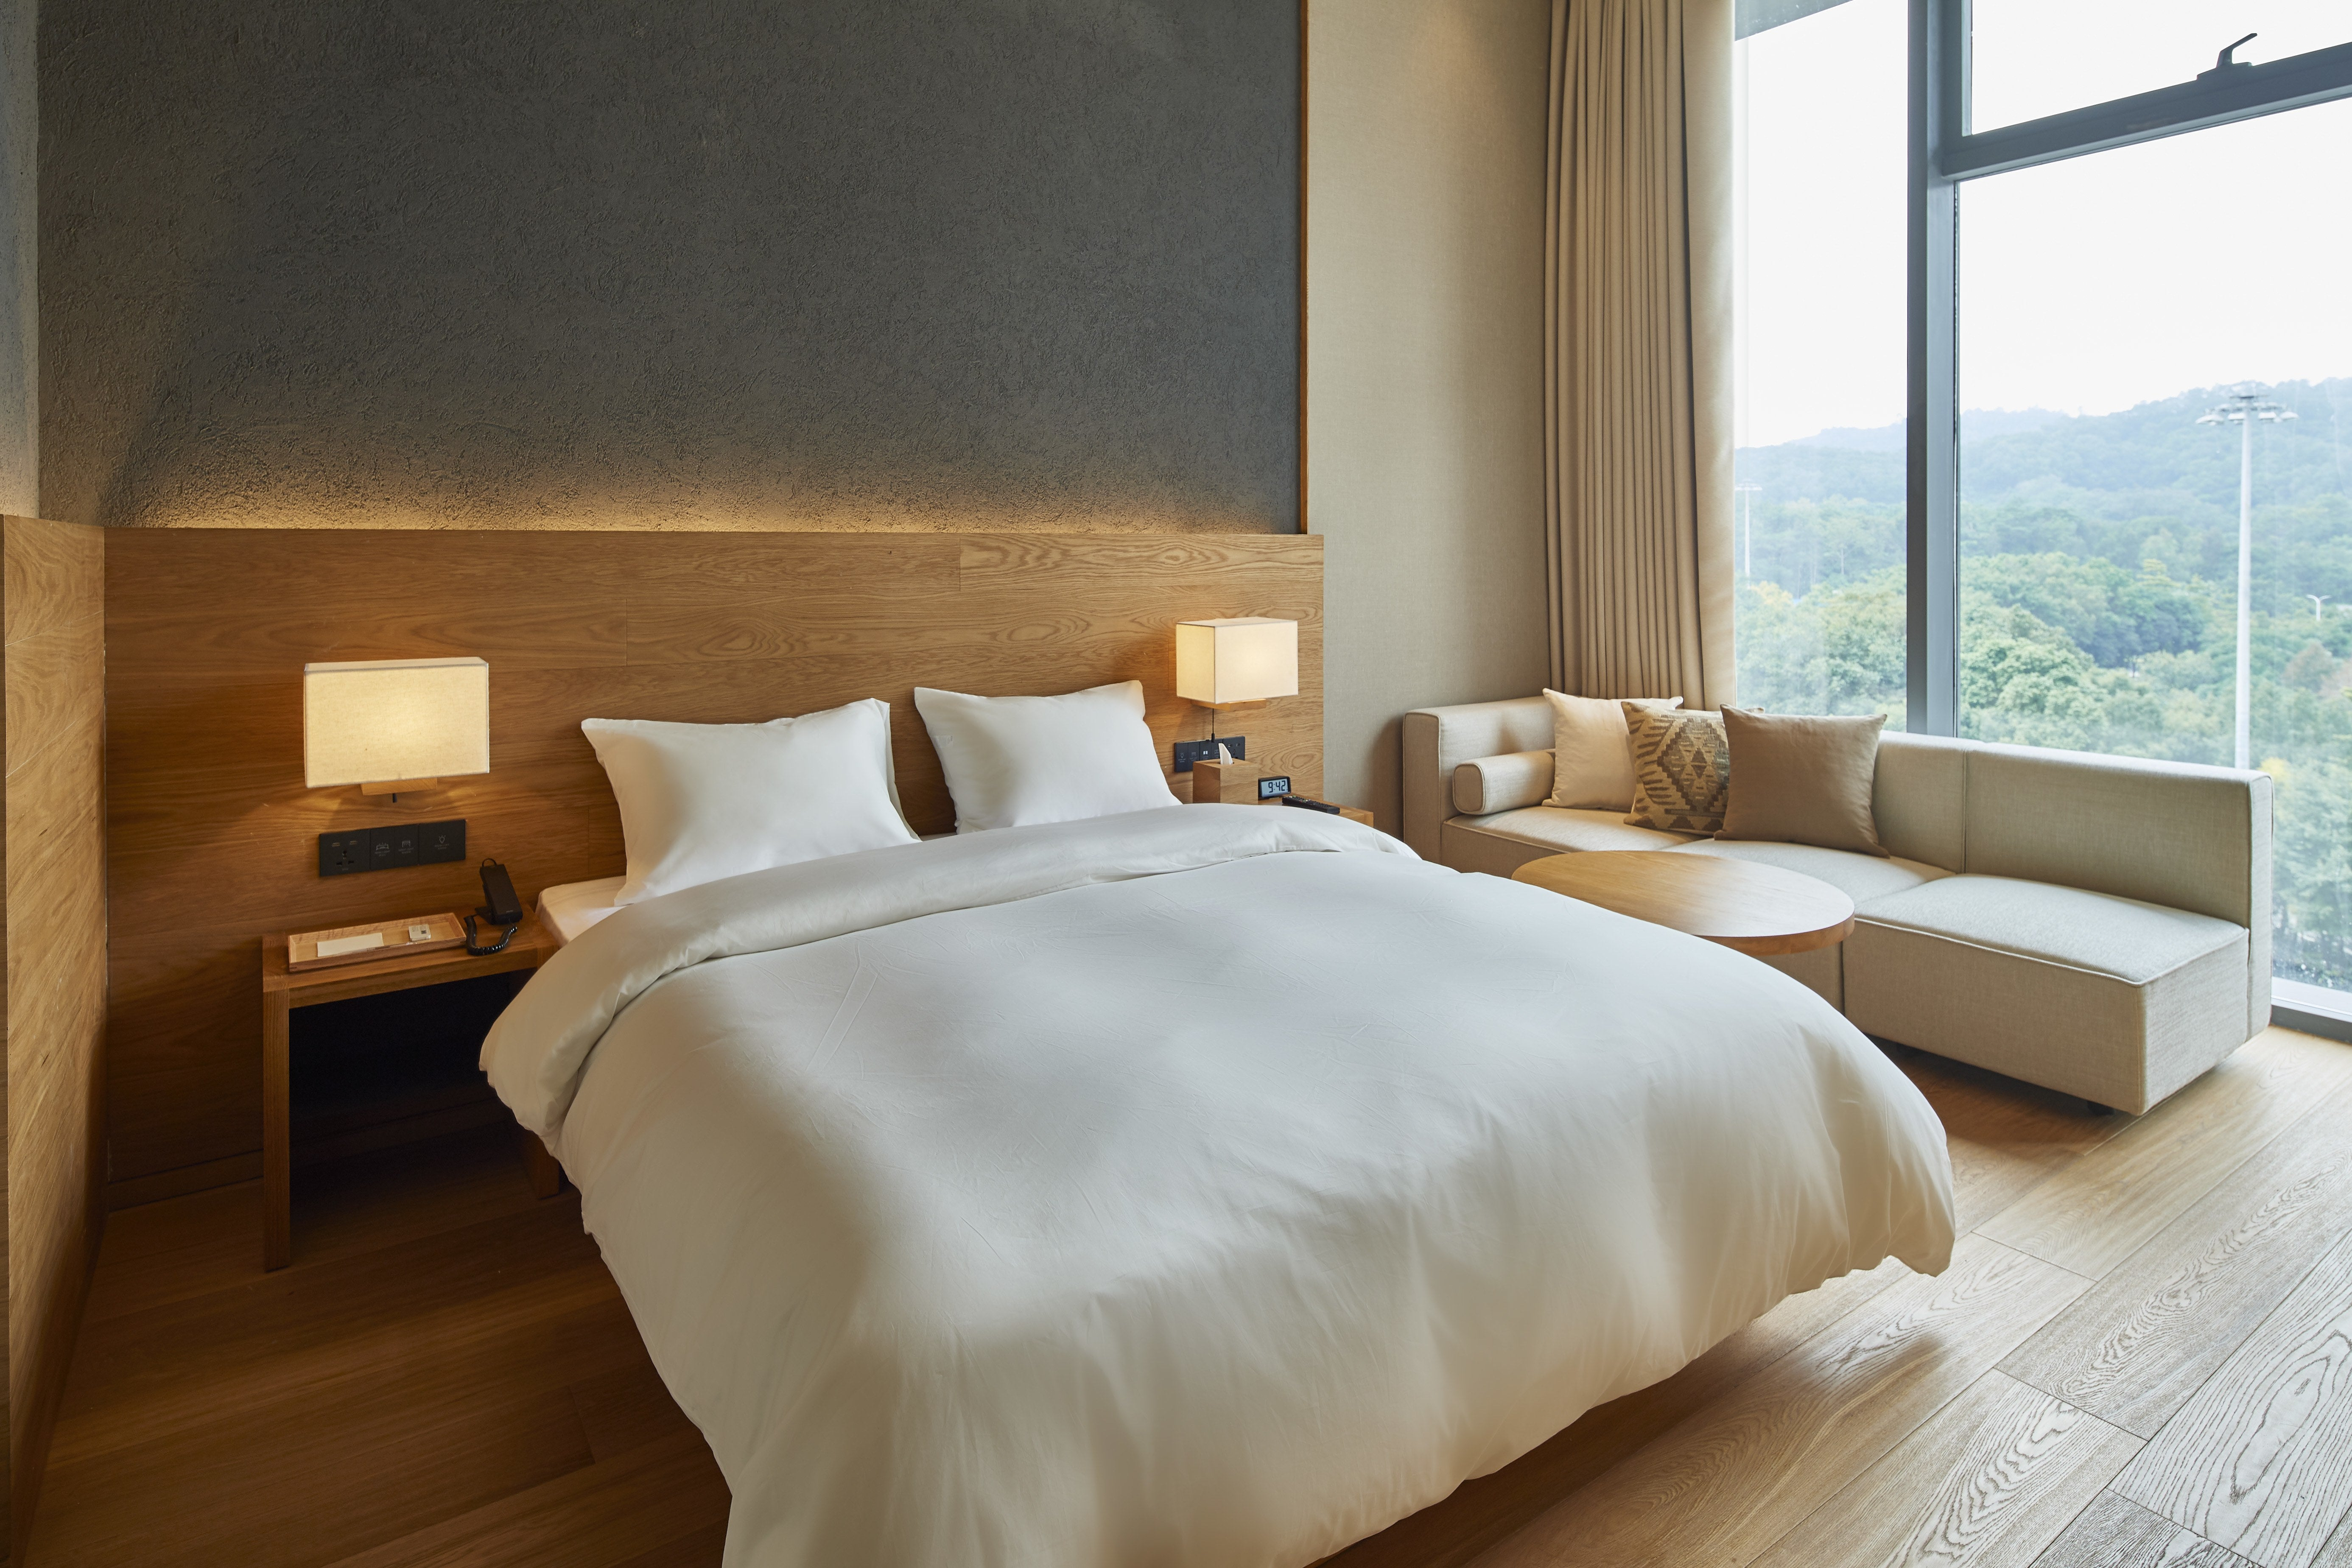 Anese Retailer Muji Opens Two New Hotels Restaurants In China